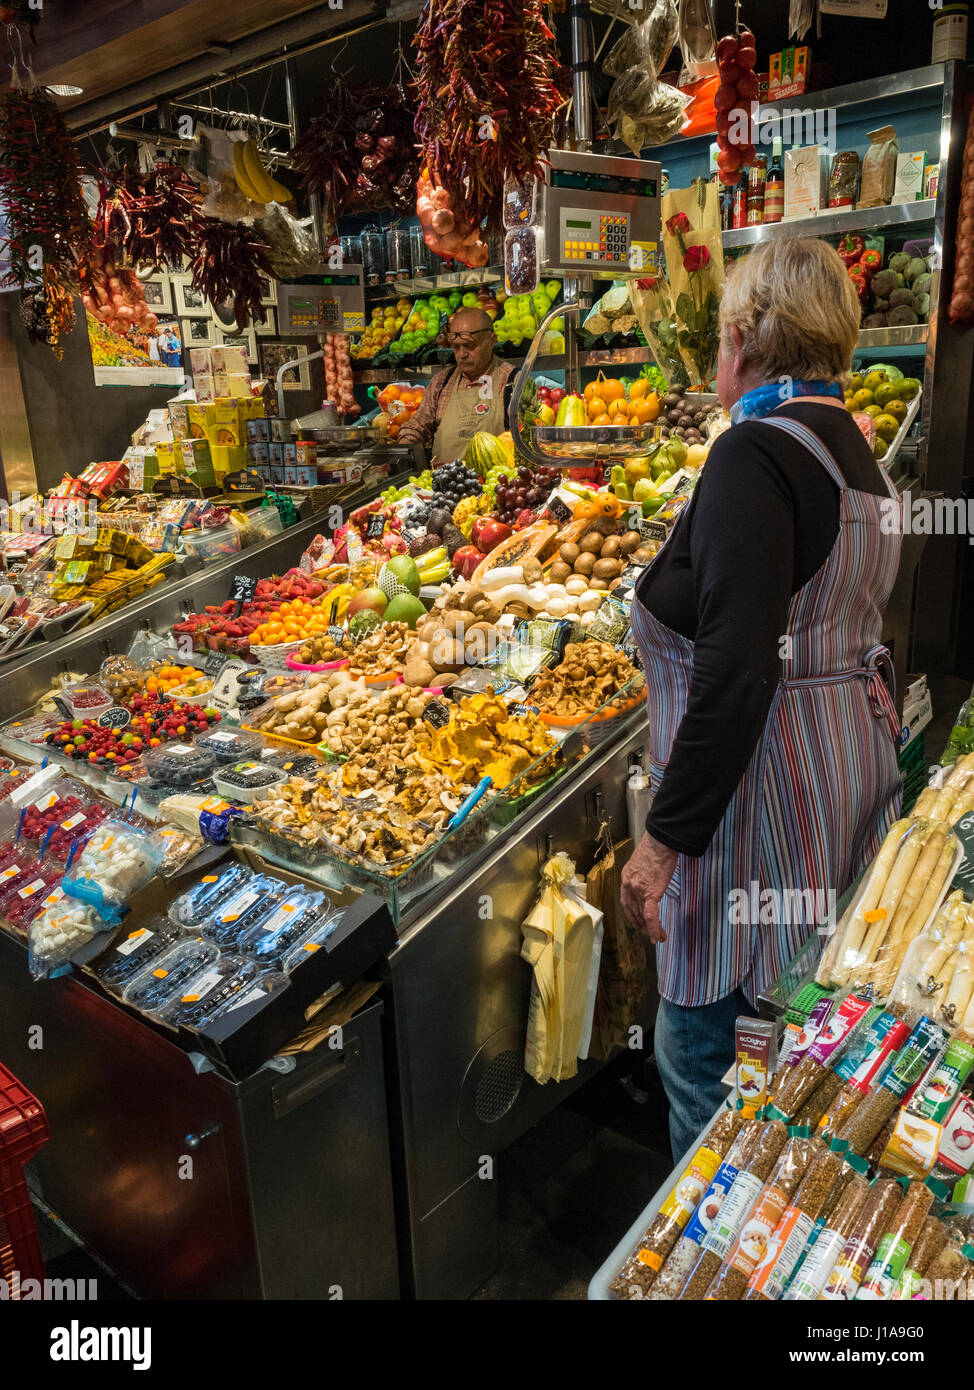 A marriage of fruit trees await the arrival of customers to their beautiful stop of the Boqueria market. - Stock Image